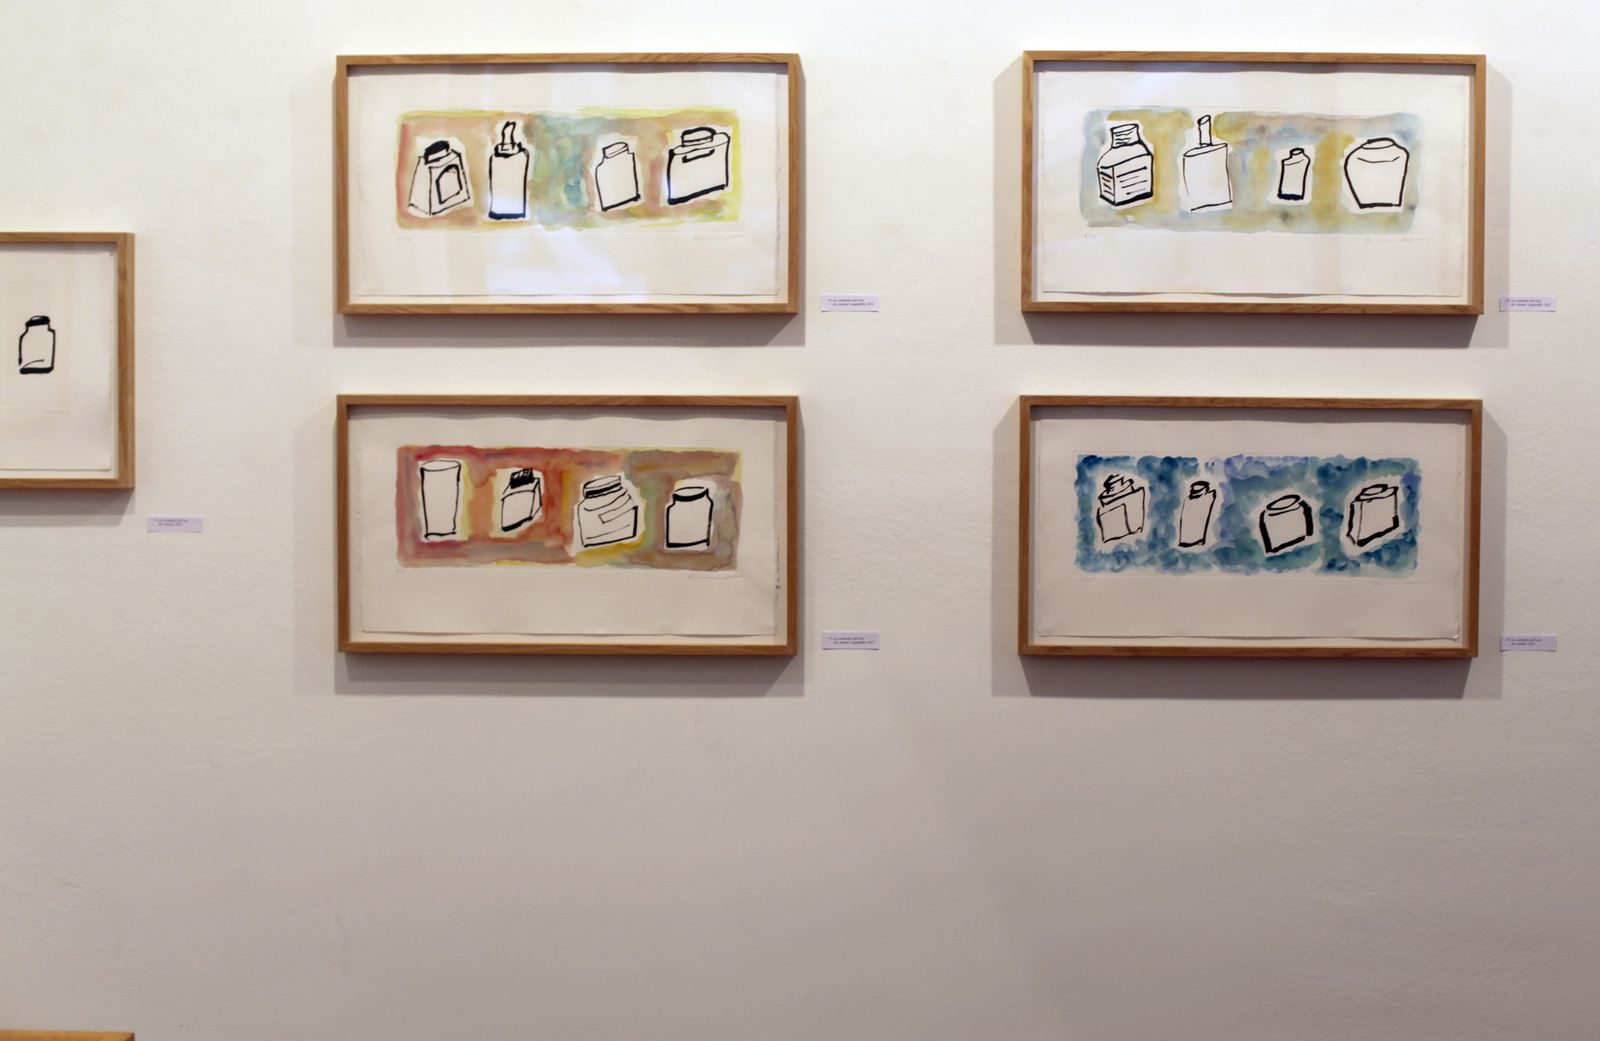 "Série ""La commedia dell'arte dei calamai"", 2015 d'Etel Adnan - Courtesy Galerie Lelong © Photo Éric Simon"